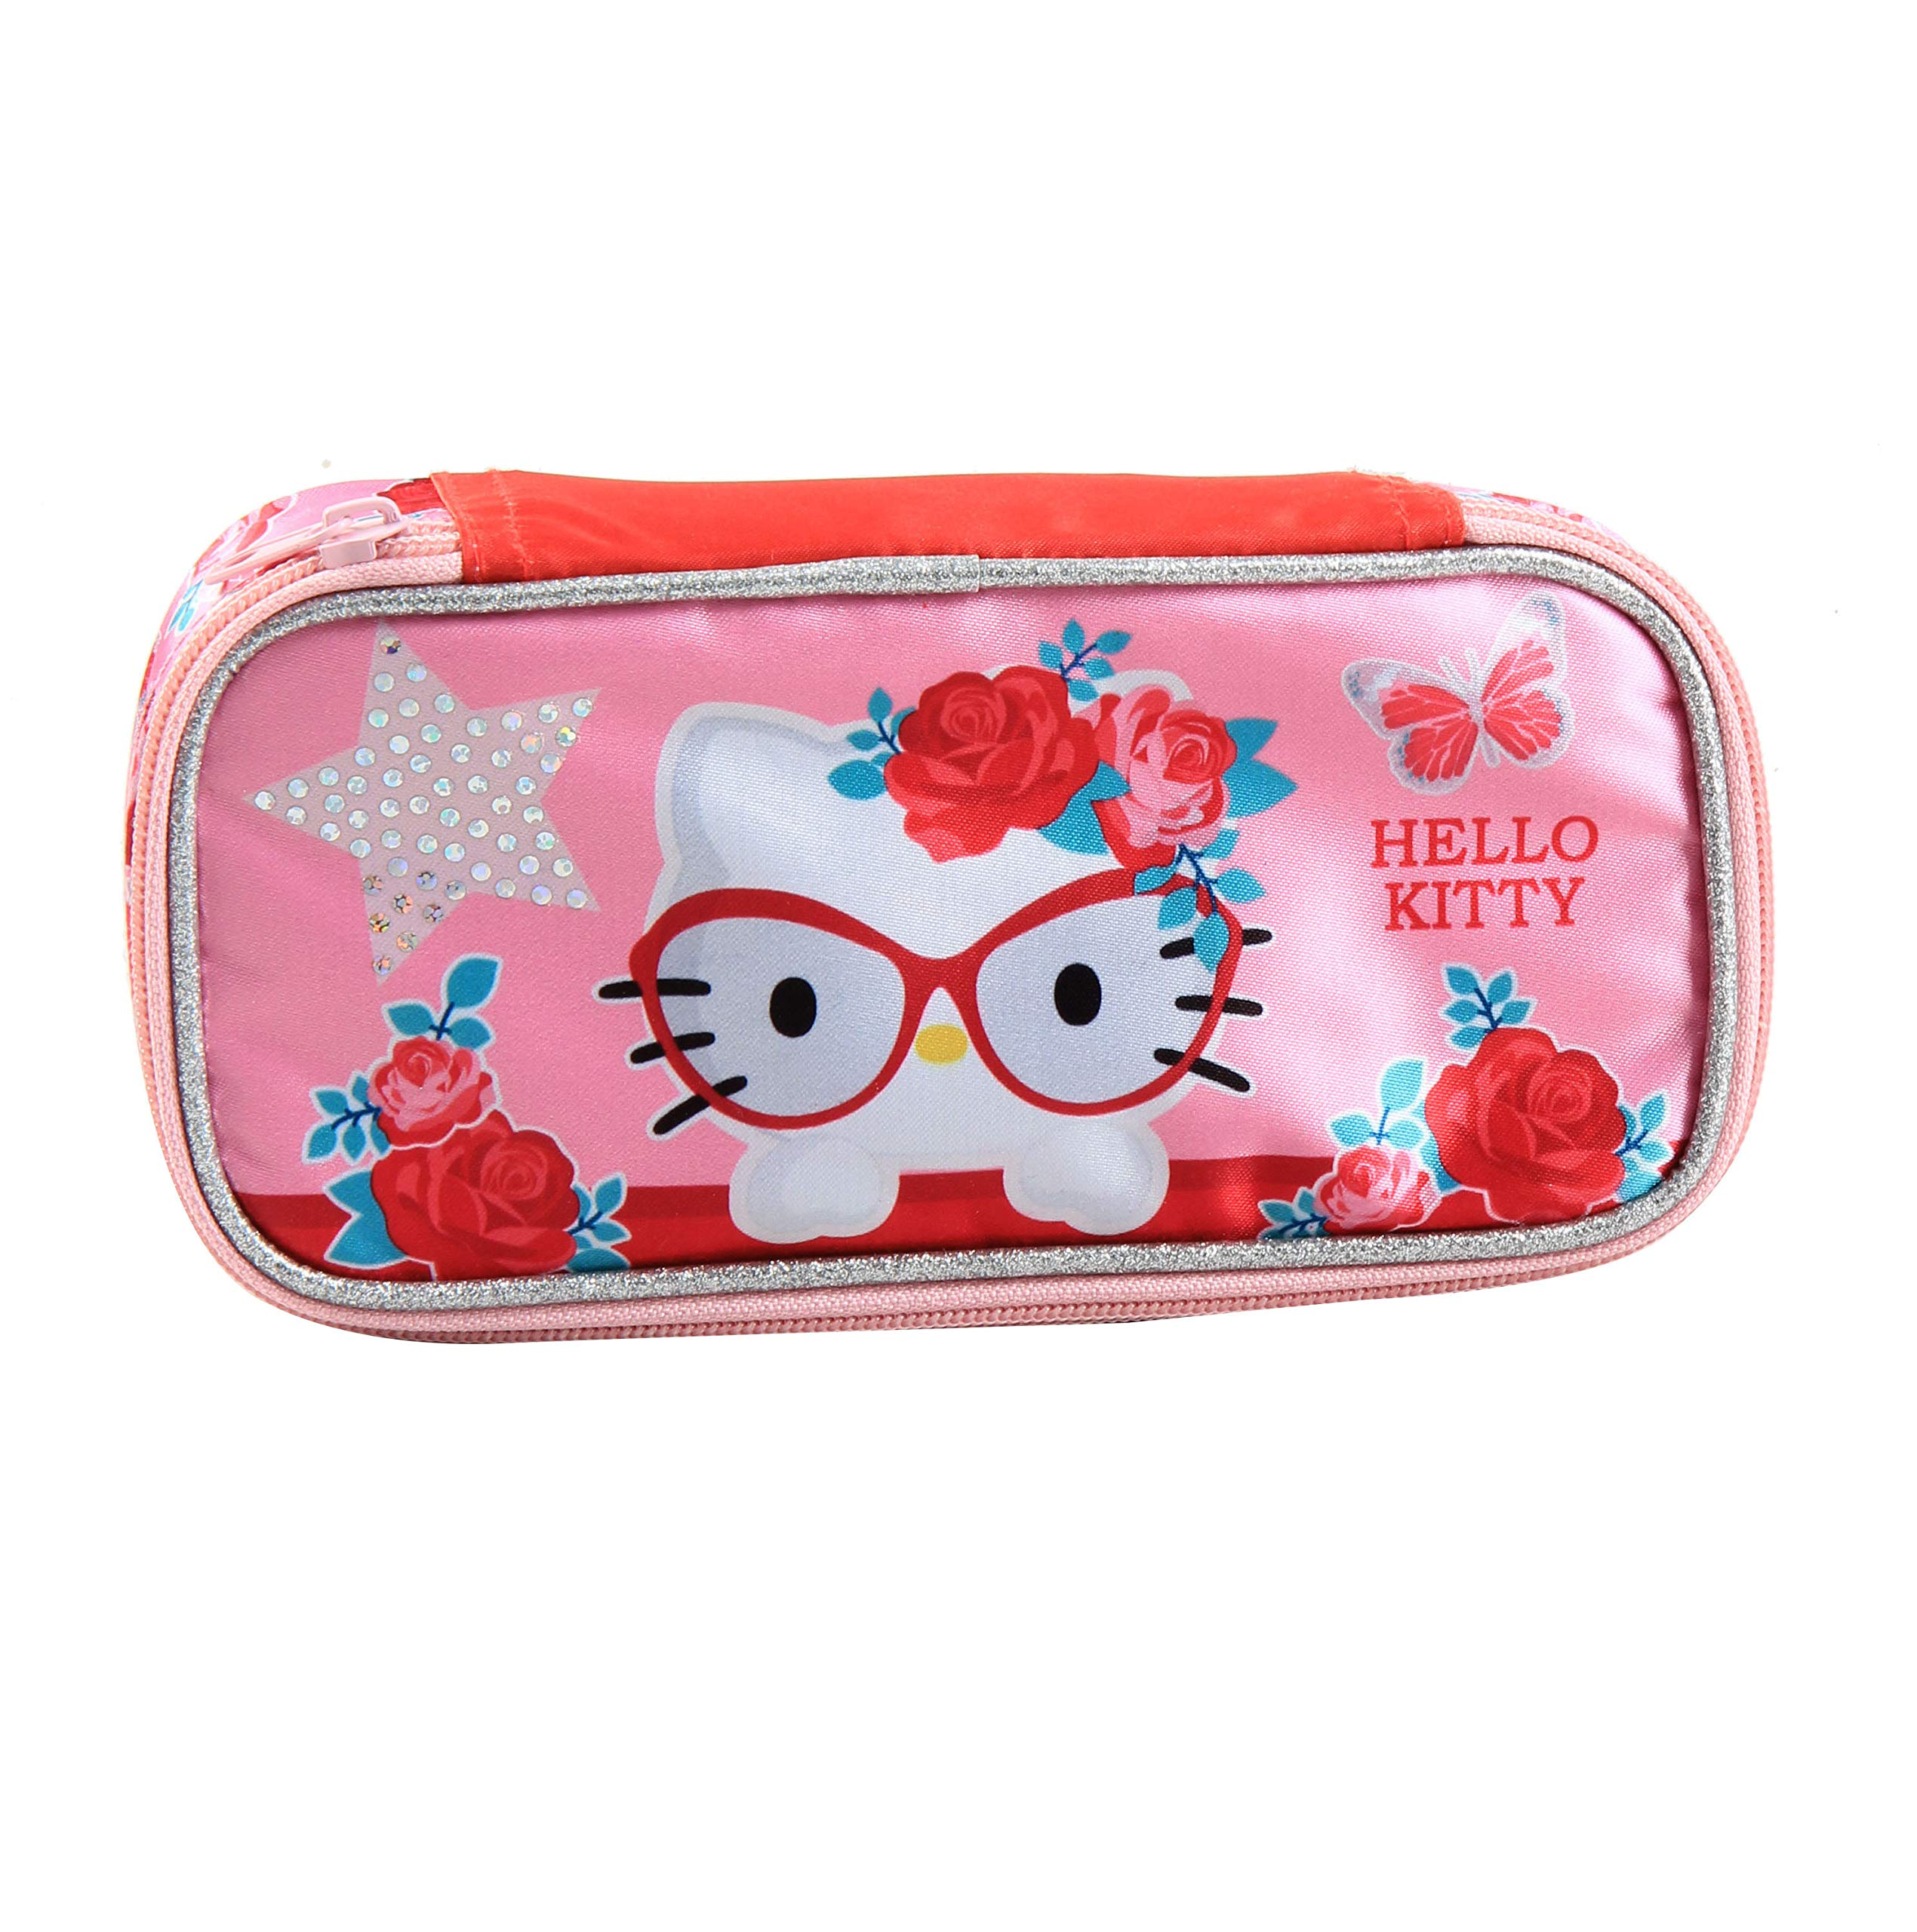 Jacob & Co. Pencilbox Hello Kitty – Estuche (21 cm), Color Rosa